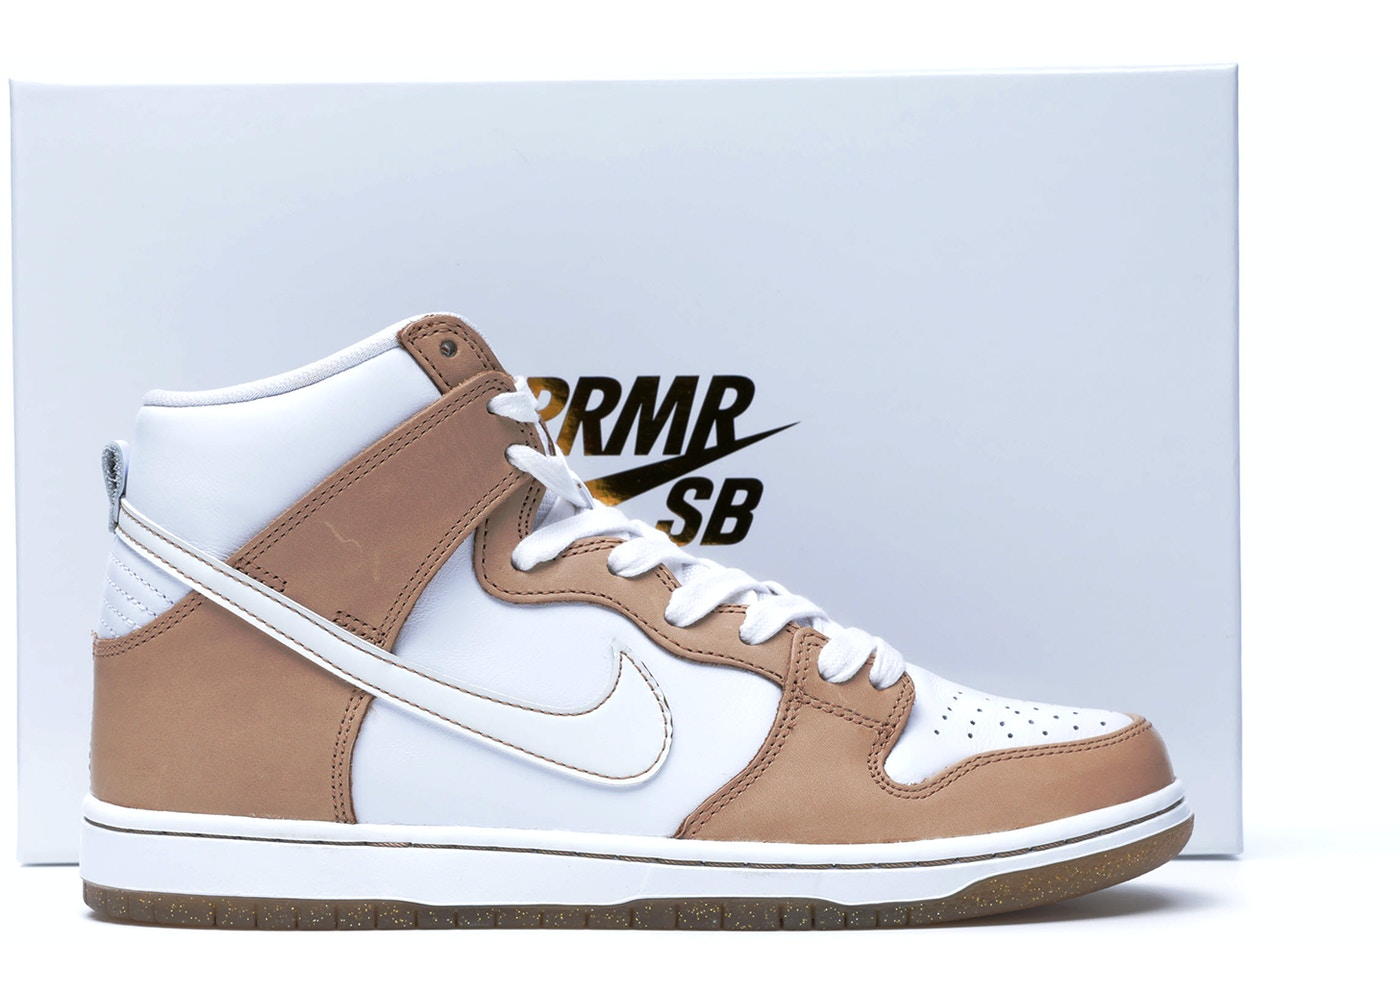 separation shoes 2b77b a97e3 Nike SB Dunk High Premier Win Some Lose Some (Special Box ...